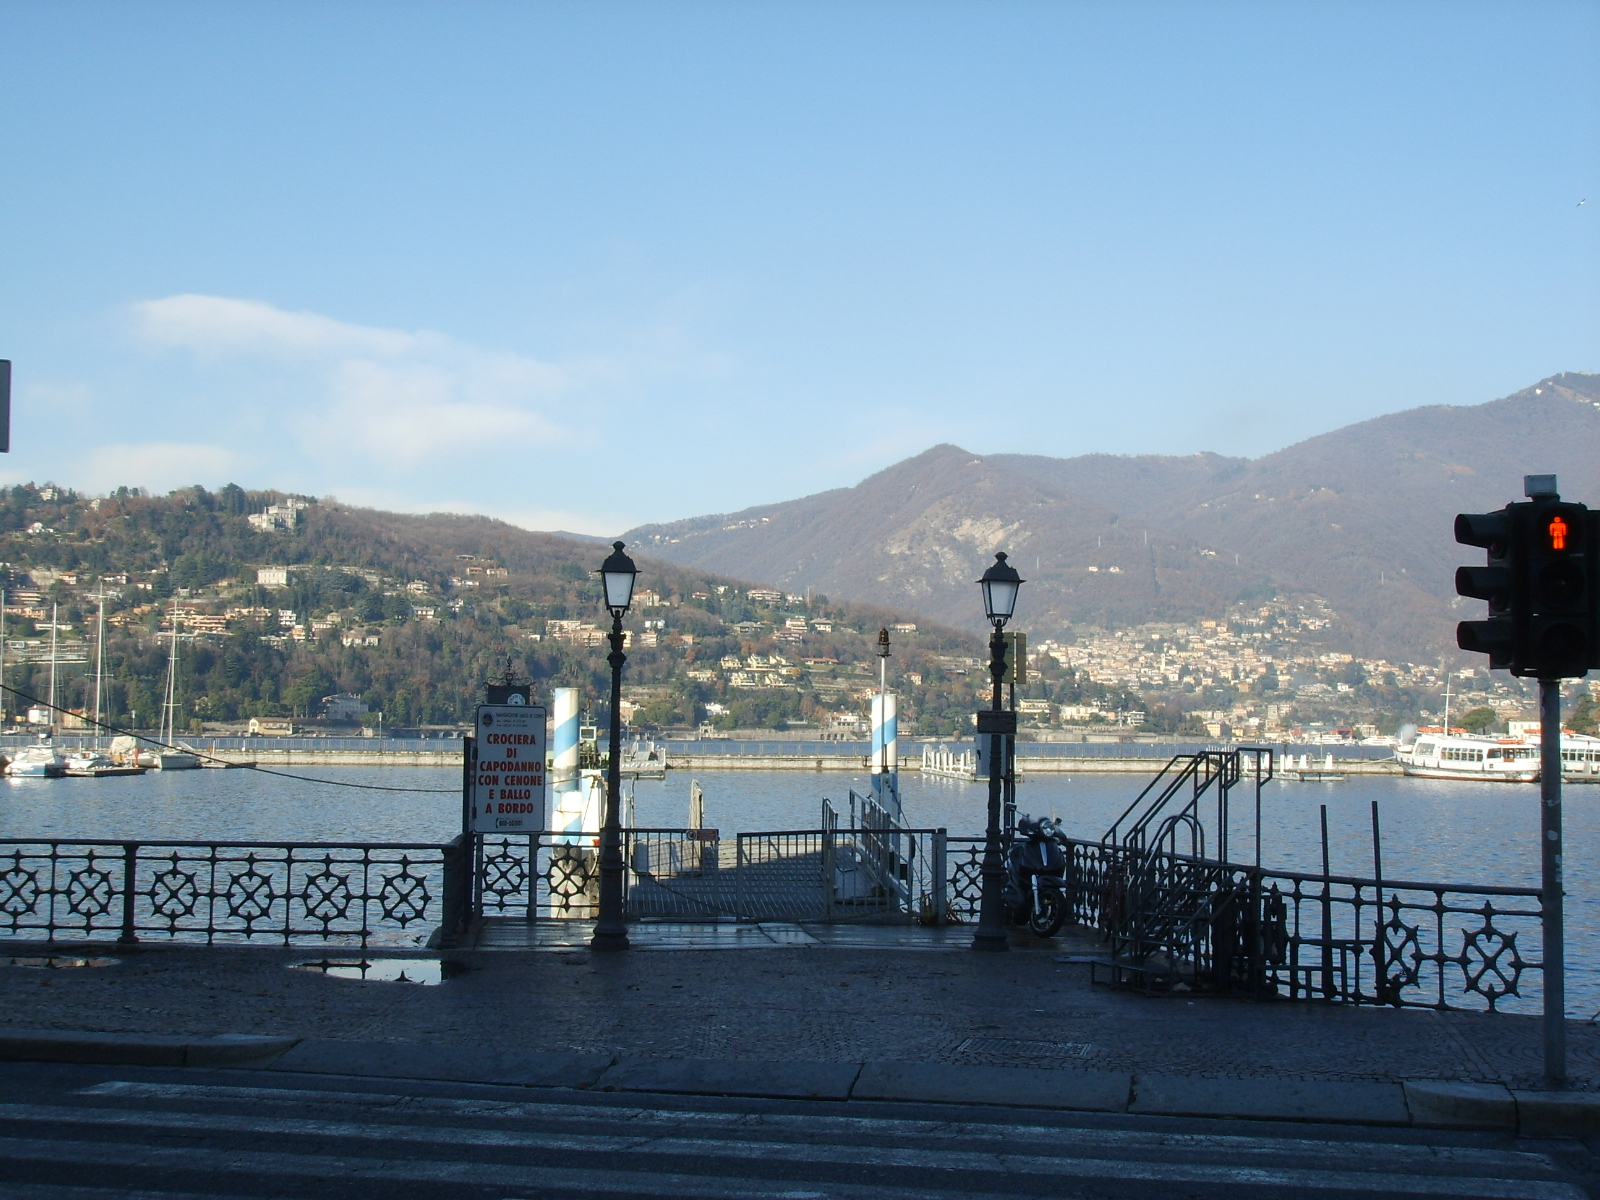 Description Como, lago 02.JPG